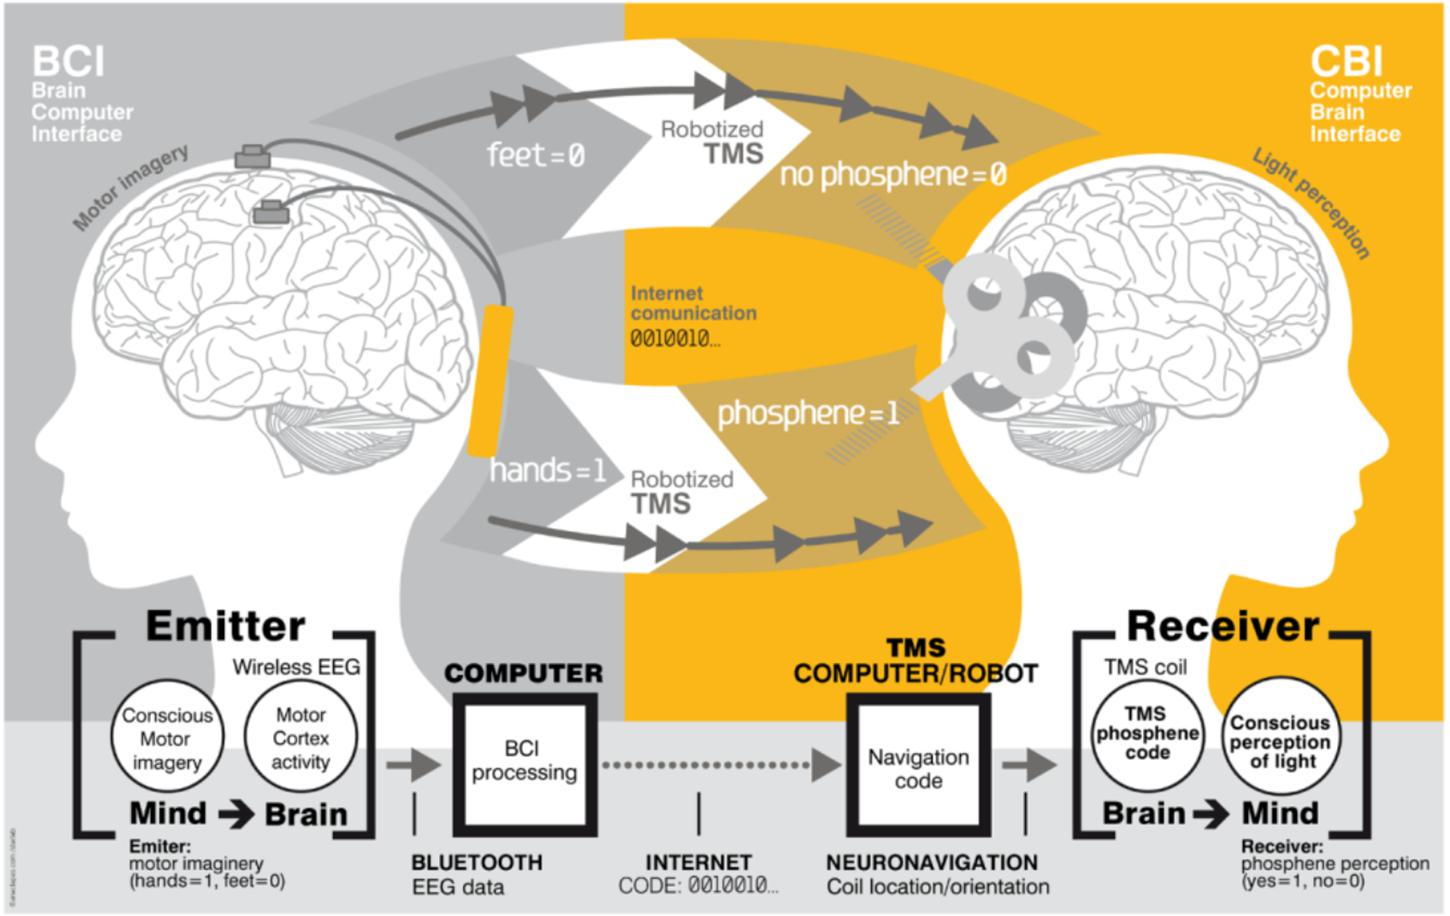 hacking-the-brain-with-nanoparticles-–-forbidden-knowledge-tv